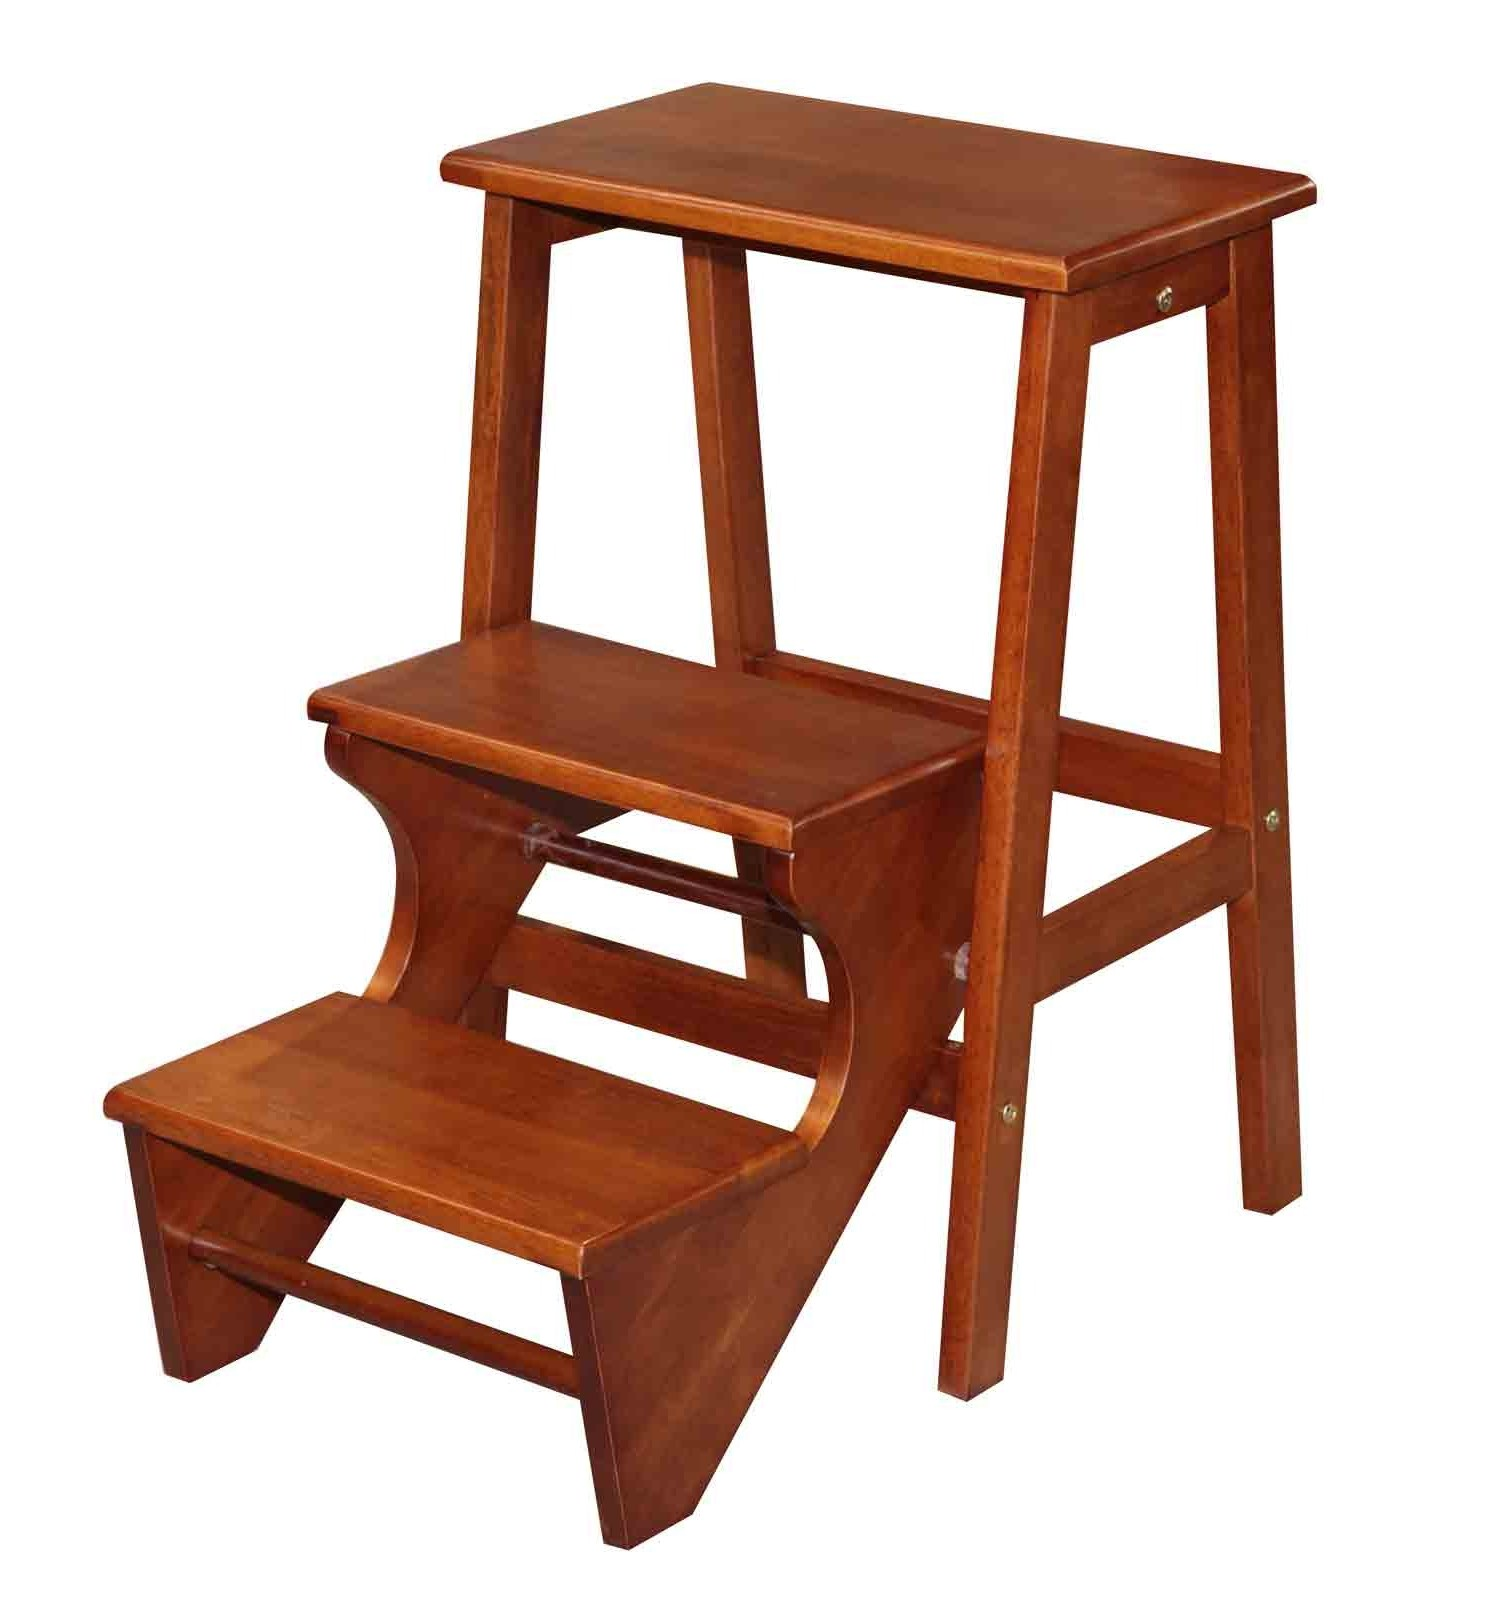 Image of: Wooden Kitchen Step Stools